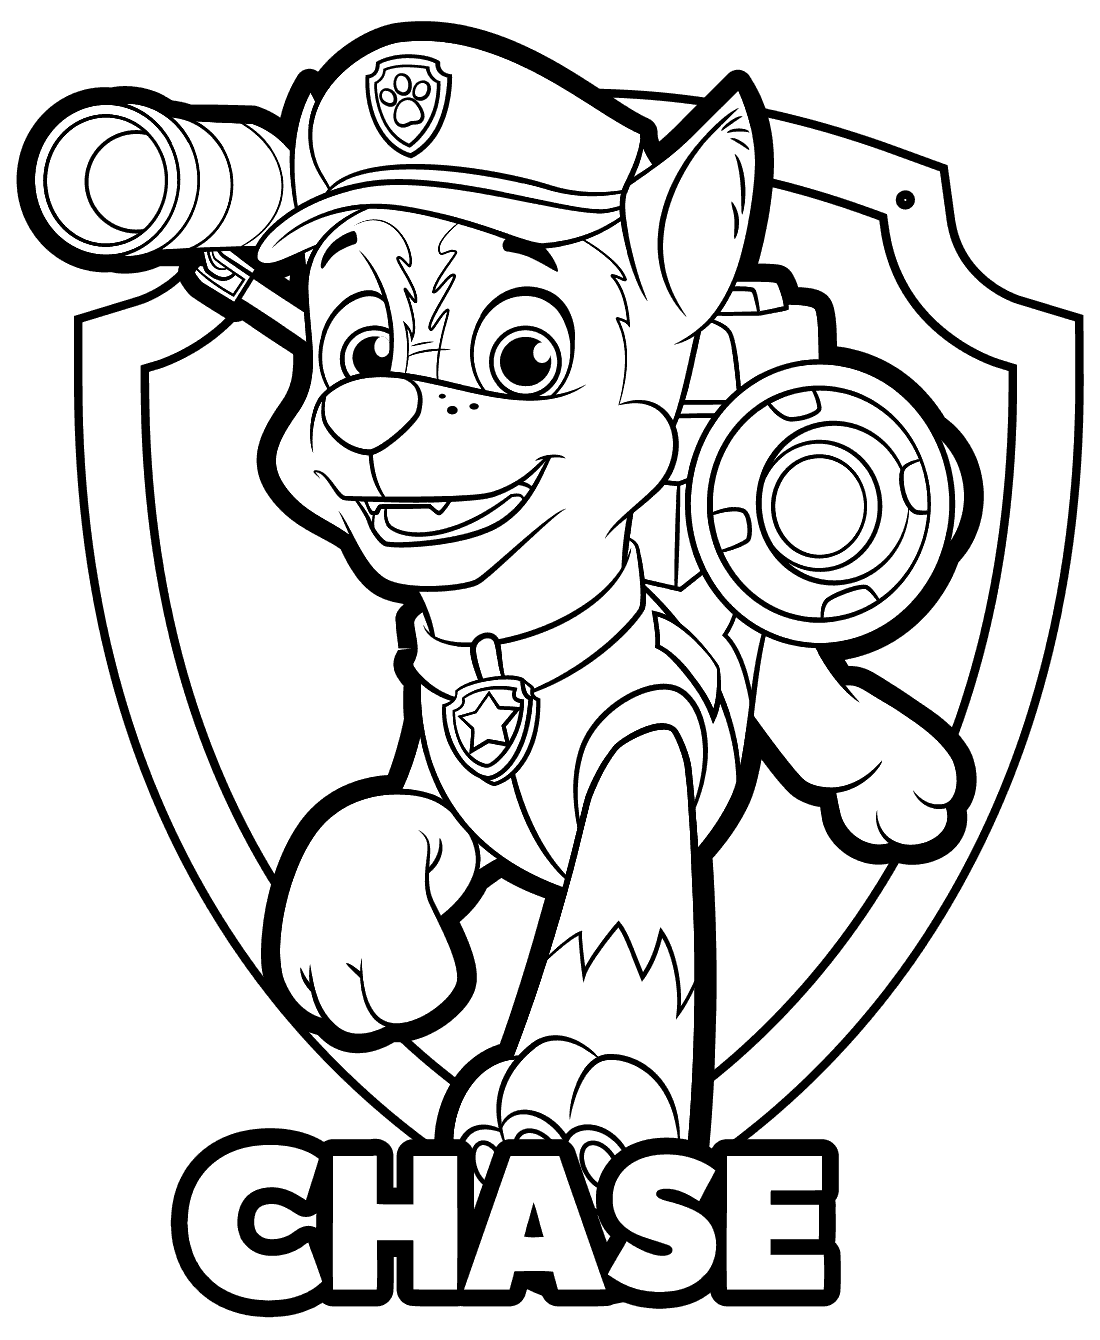 Ausmalbilder Paw Patrol Skye : Chase Paw Patrol Drawing At Getdrawings Com Free For Personal Use